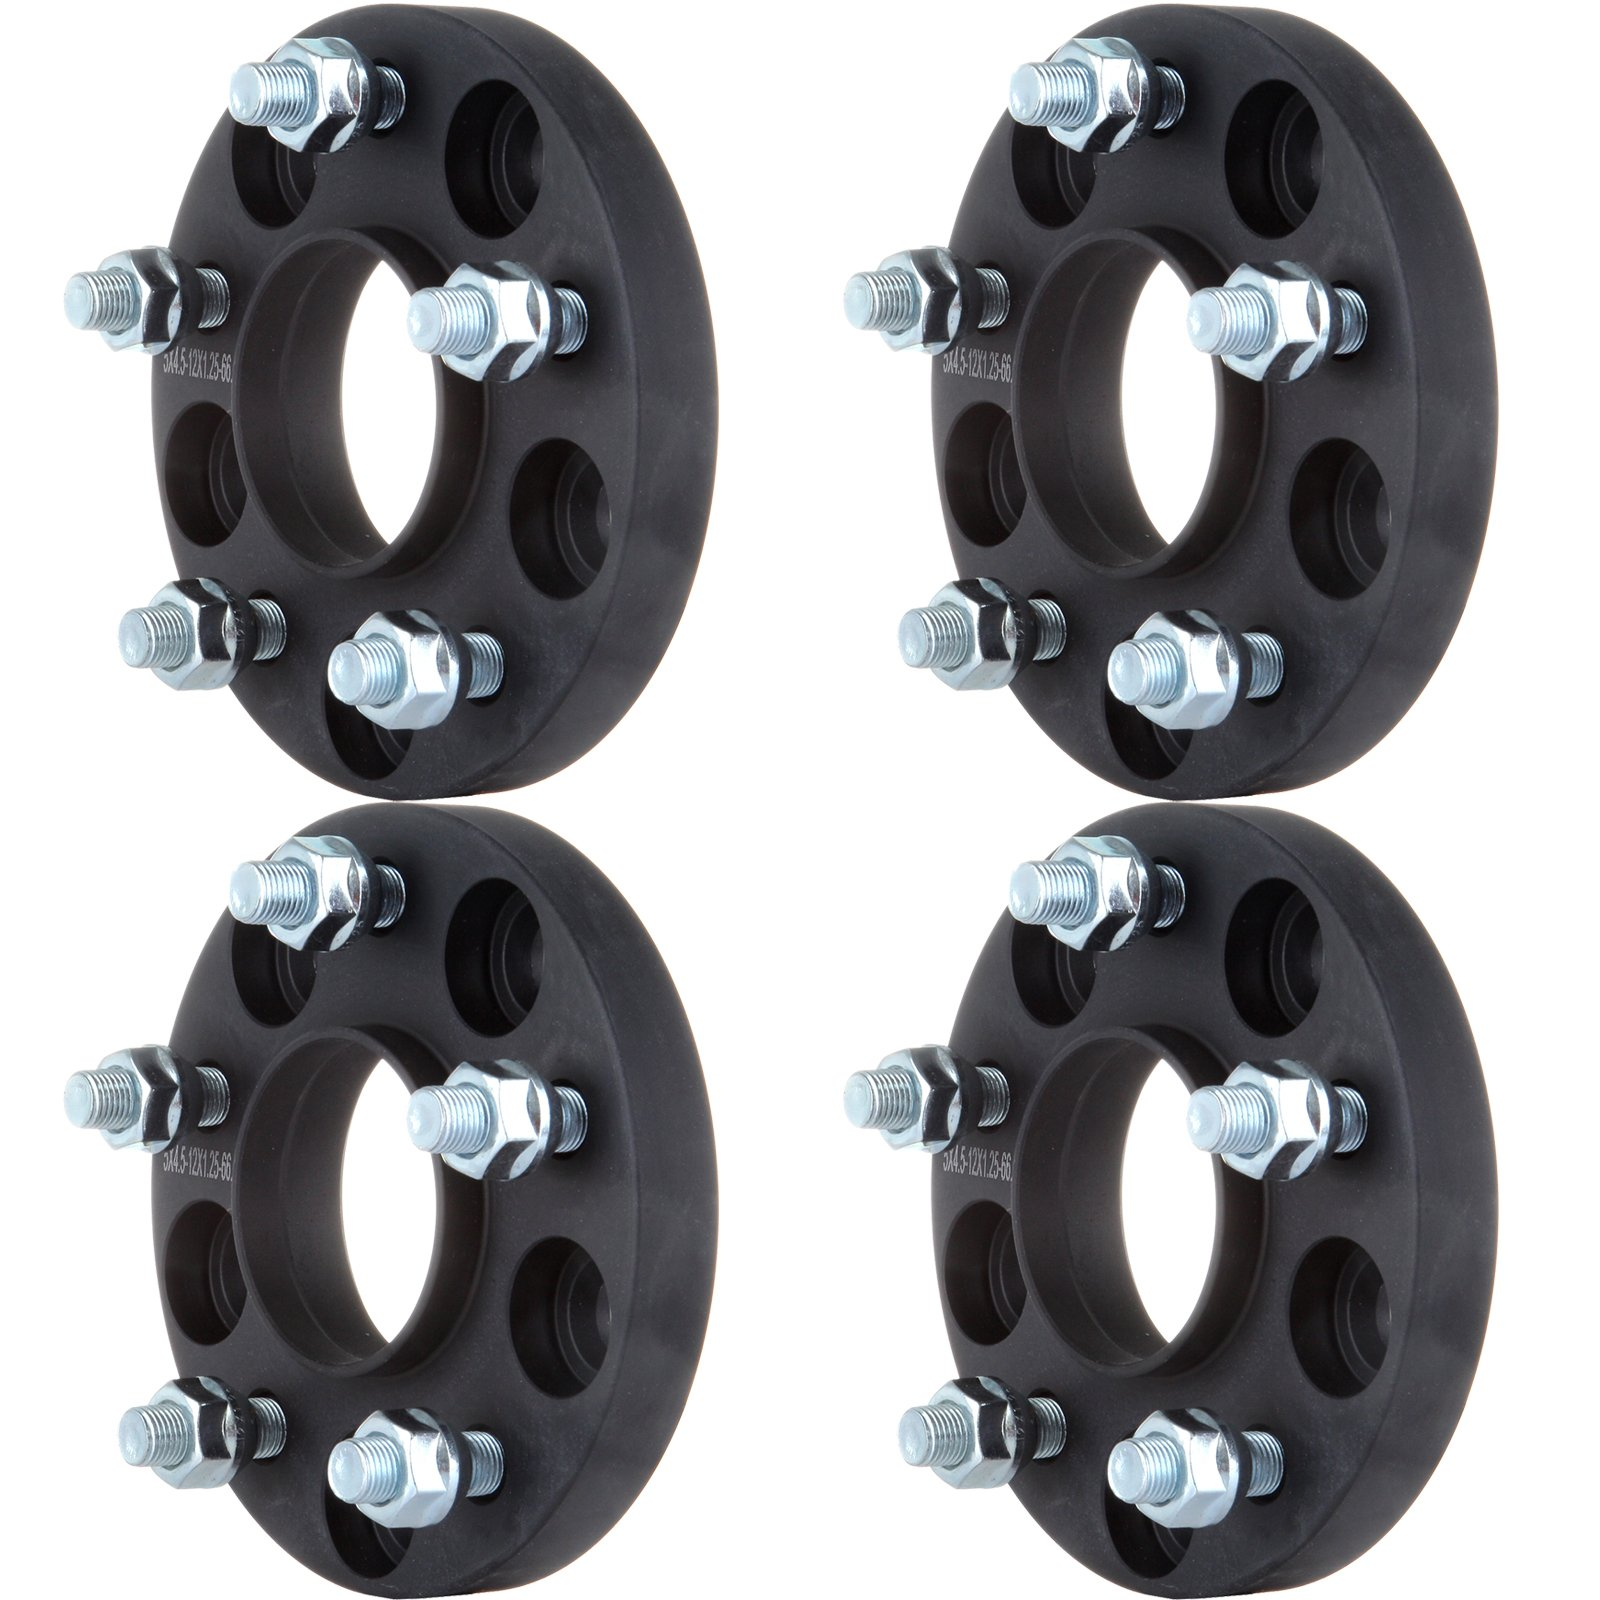 Wheel Spacers,ECCPP Hubcentric Wheel Spacer Adapters 5 lug 4X 5x4.5/5x114.3mm 20mm Fit for 2009-2015 Infinity G37 Nissan Altima Maxima Murano GTR with 12x1.25 Studs